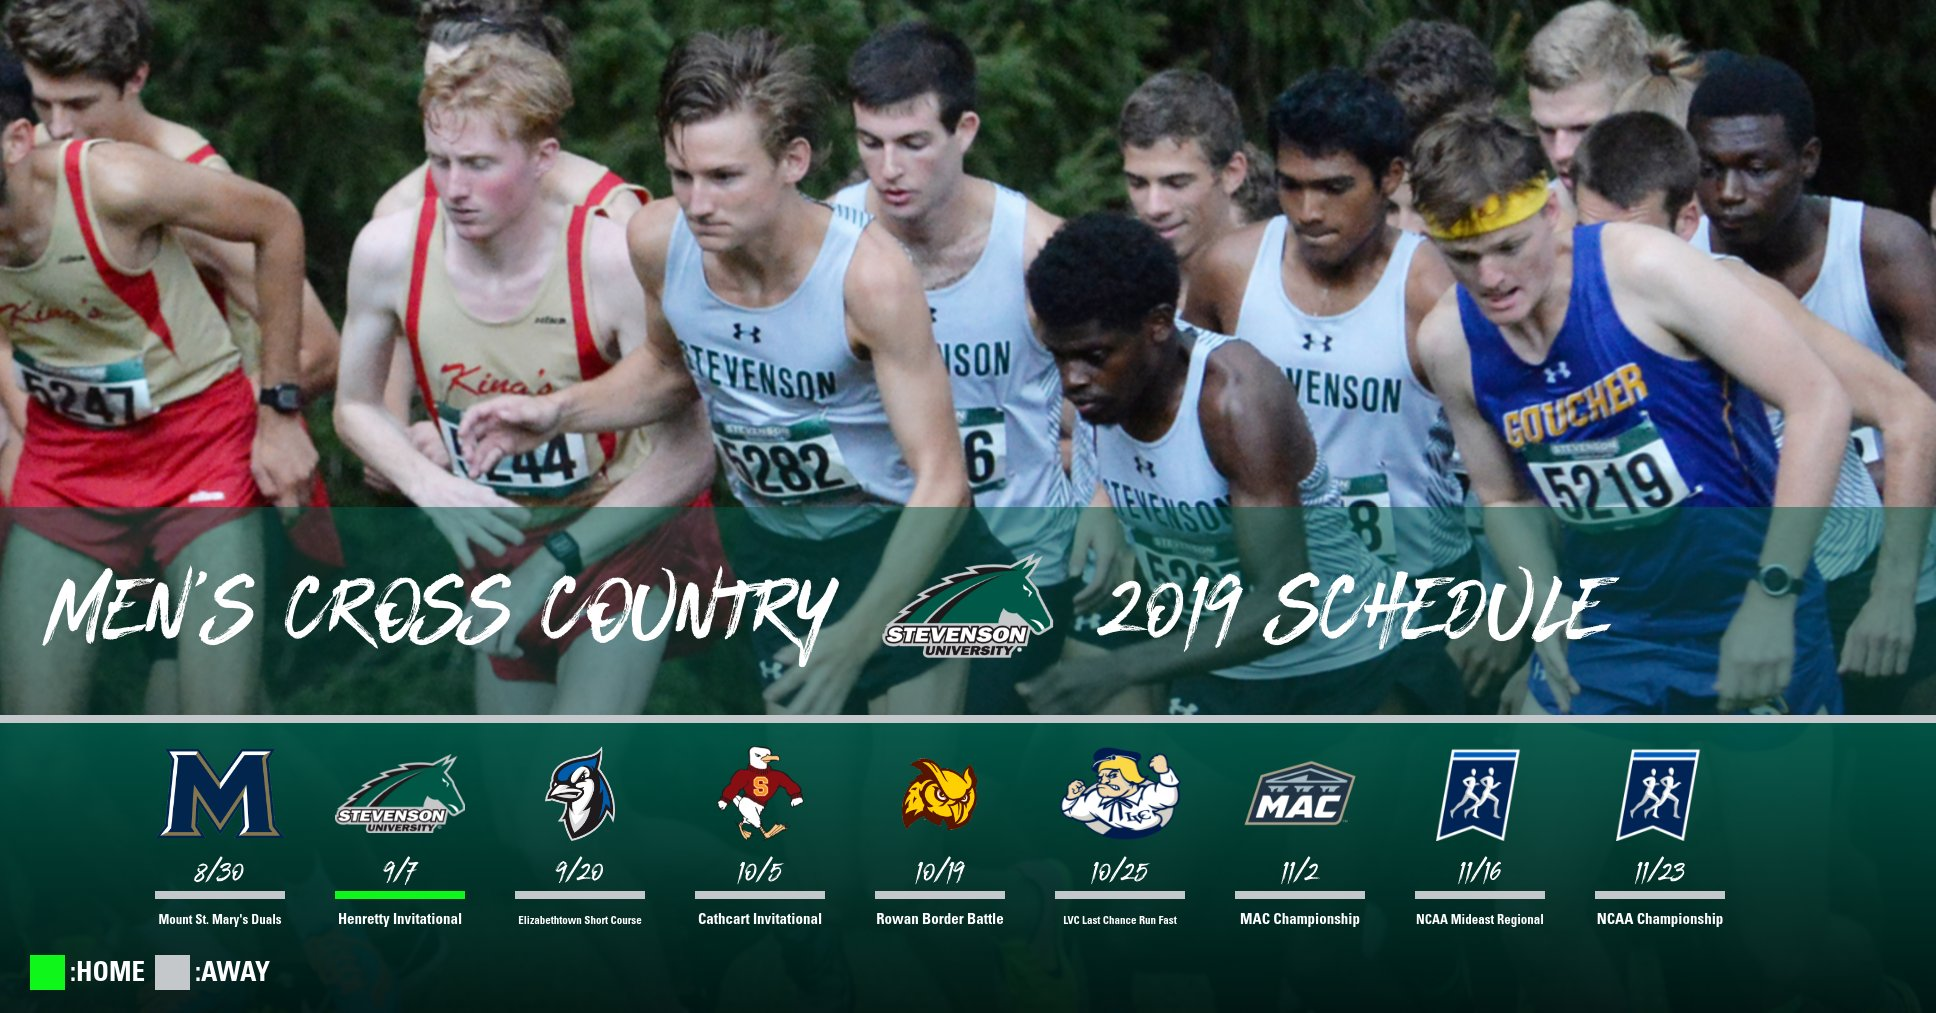 Men's Cross Country Opens August 30